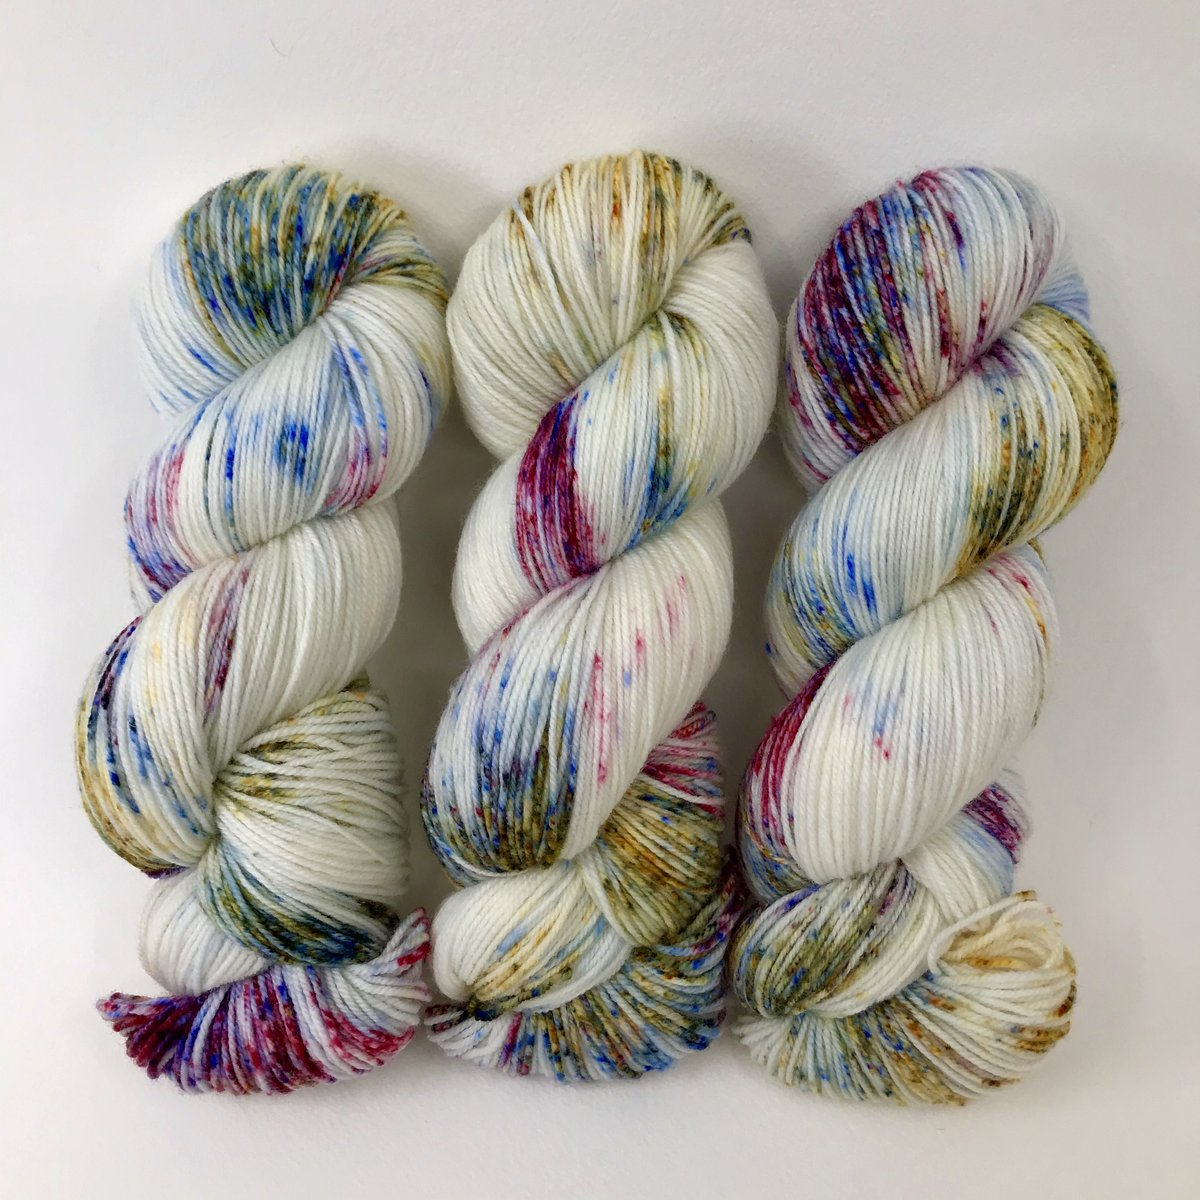 Celebration - Merino DK / Light Worsted - Dyed Stock